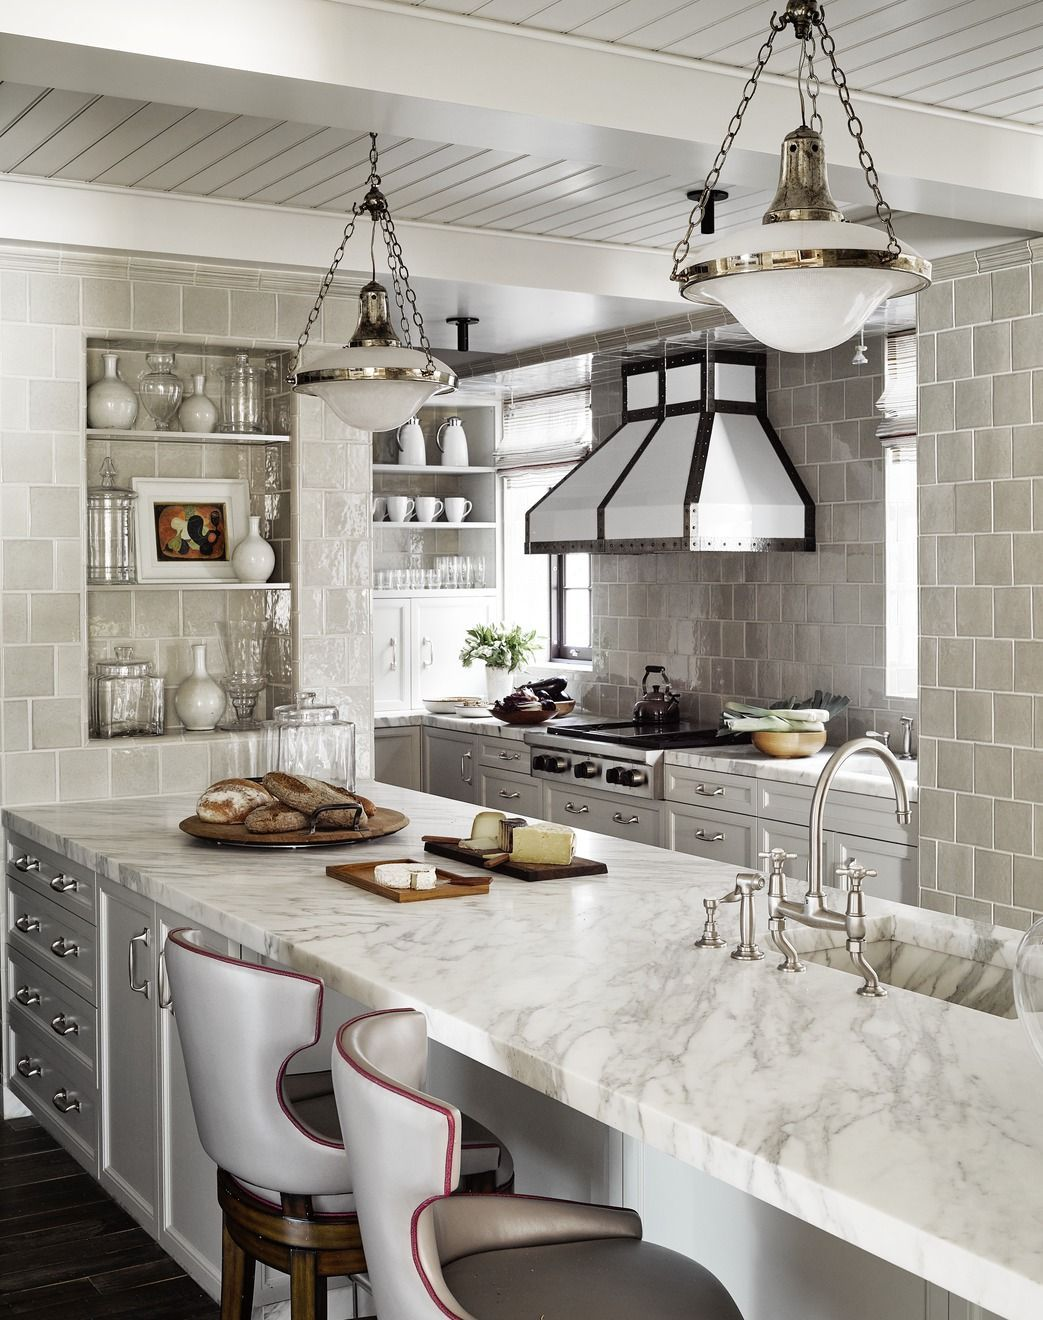 50 unique kitchen lighting fixtures that make for memorable meals 50 unique kitchen lighting fixtures that make for memorable meals elledecor arubaitofo Choice Image